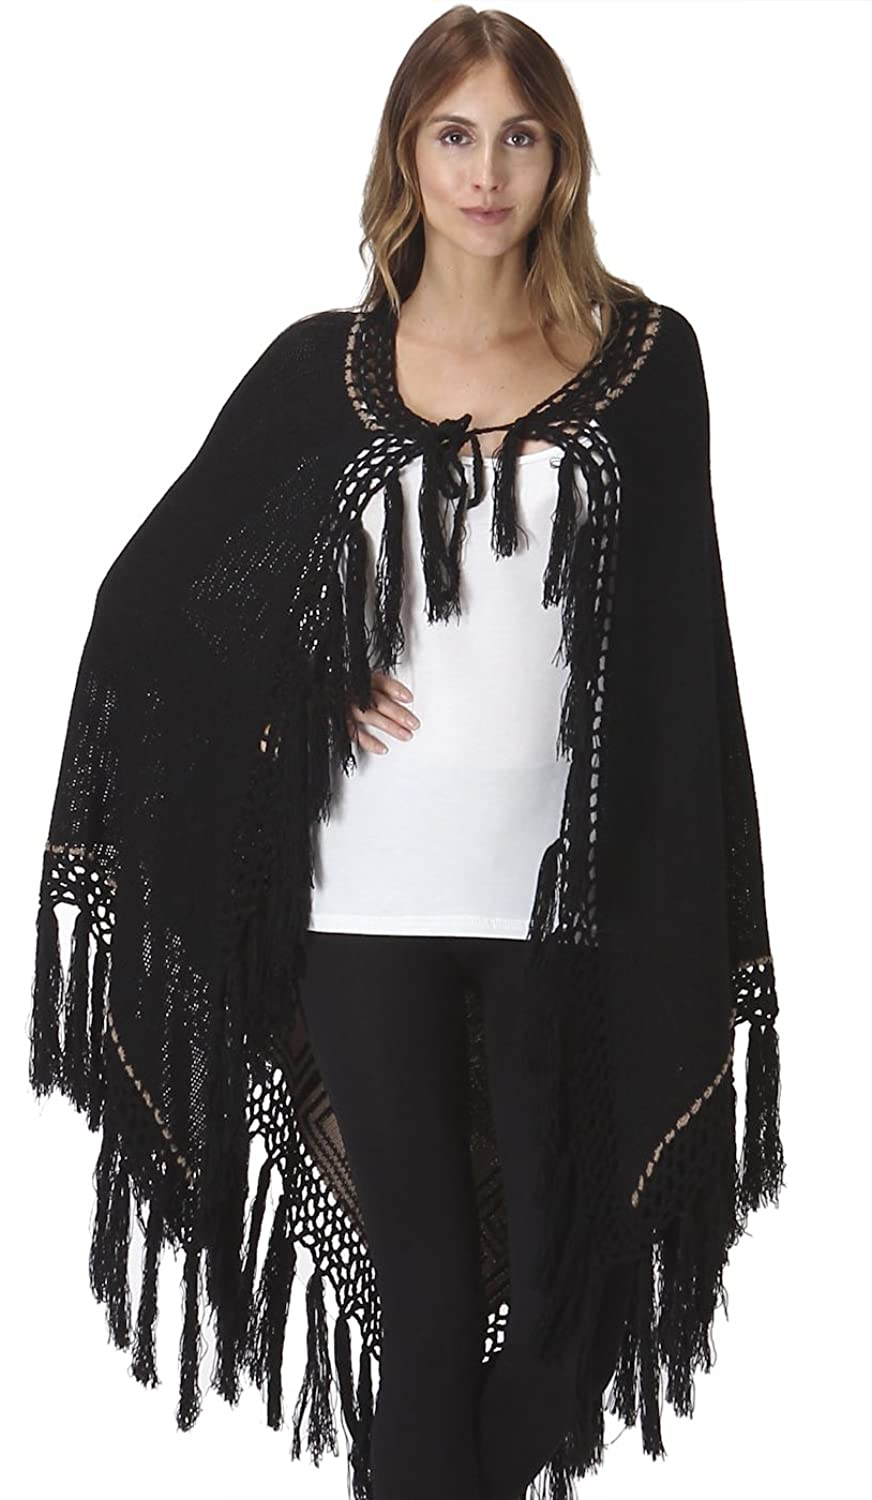 Aris Bohemian Thick Warm Crochet Knit Fringe Poncho Scarf Cardigan Cape Wrap Sweater